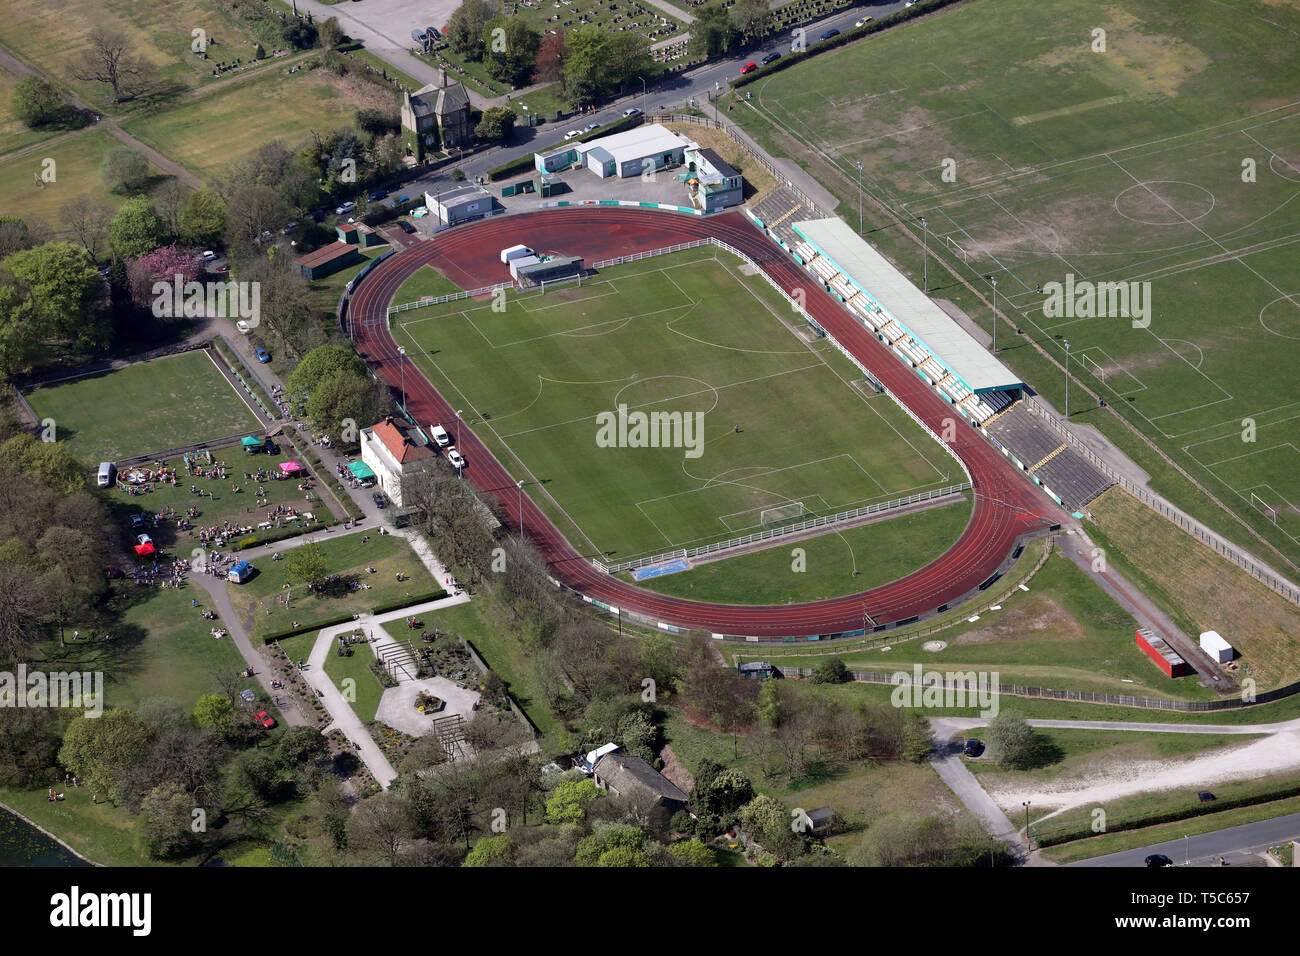 aerial view of Bradford Park Avenue FC football ground & Horsfall Stadium & Bradford Airedale Athletic Club, West Yorkshire - Stock Image